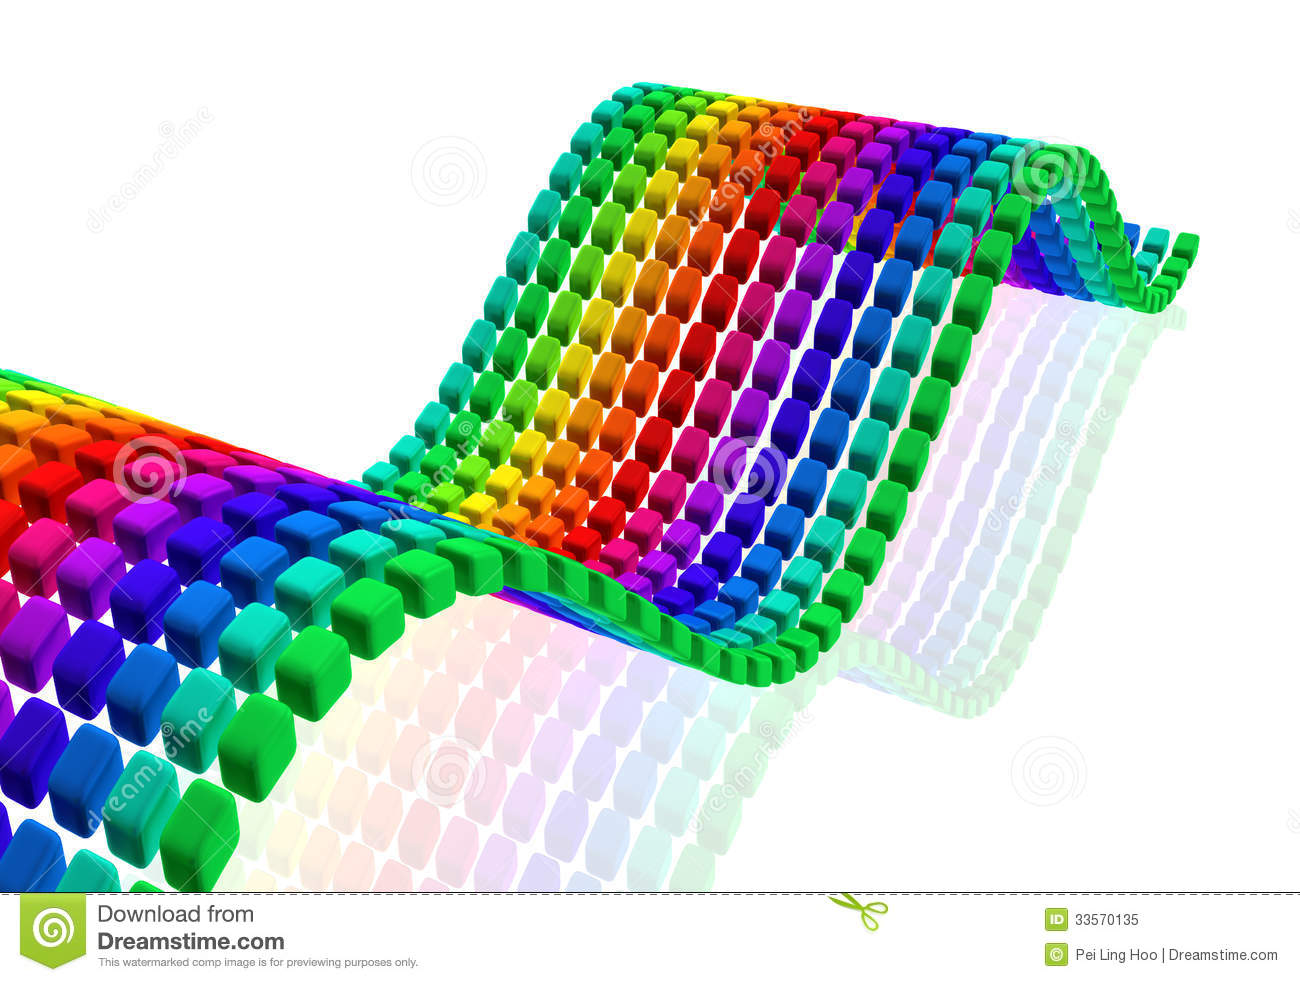 3d Curved Wallpaper Multi Color Cube Wave With Reflection Royalty Free Stock